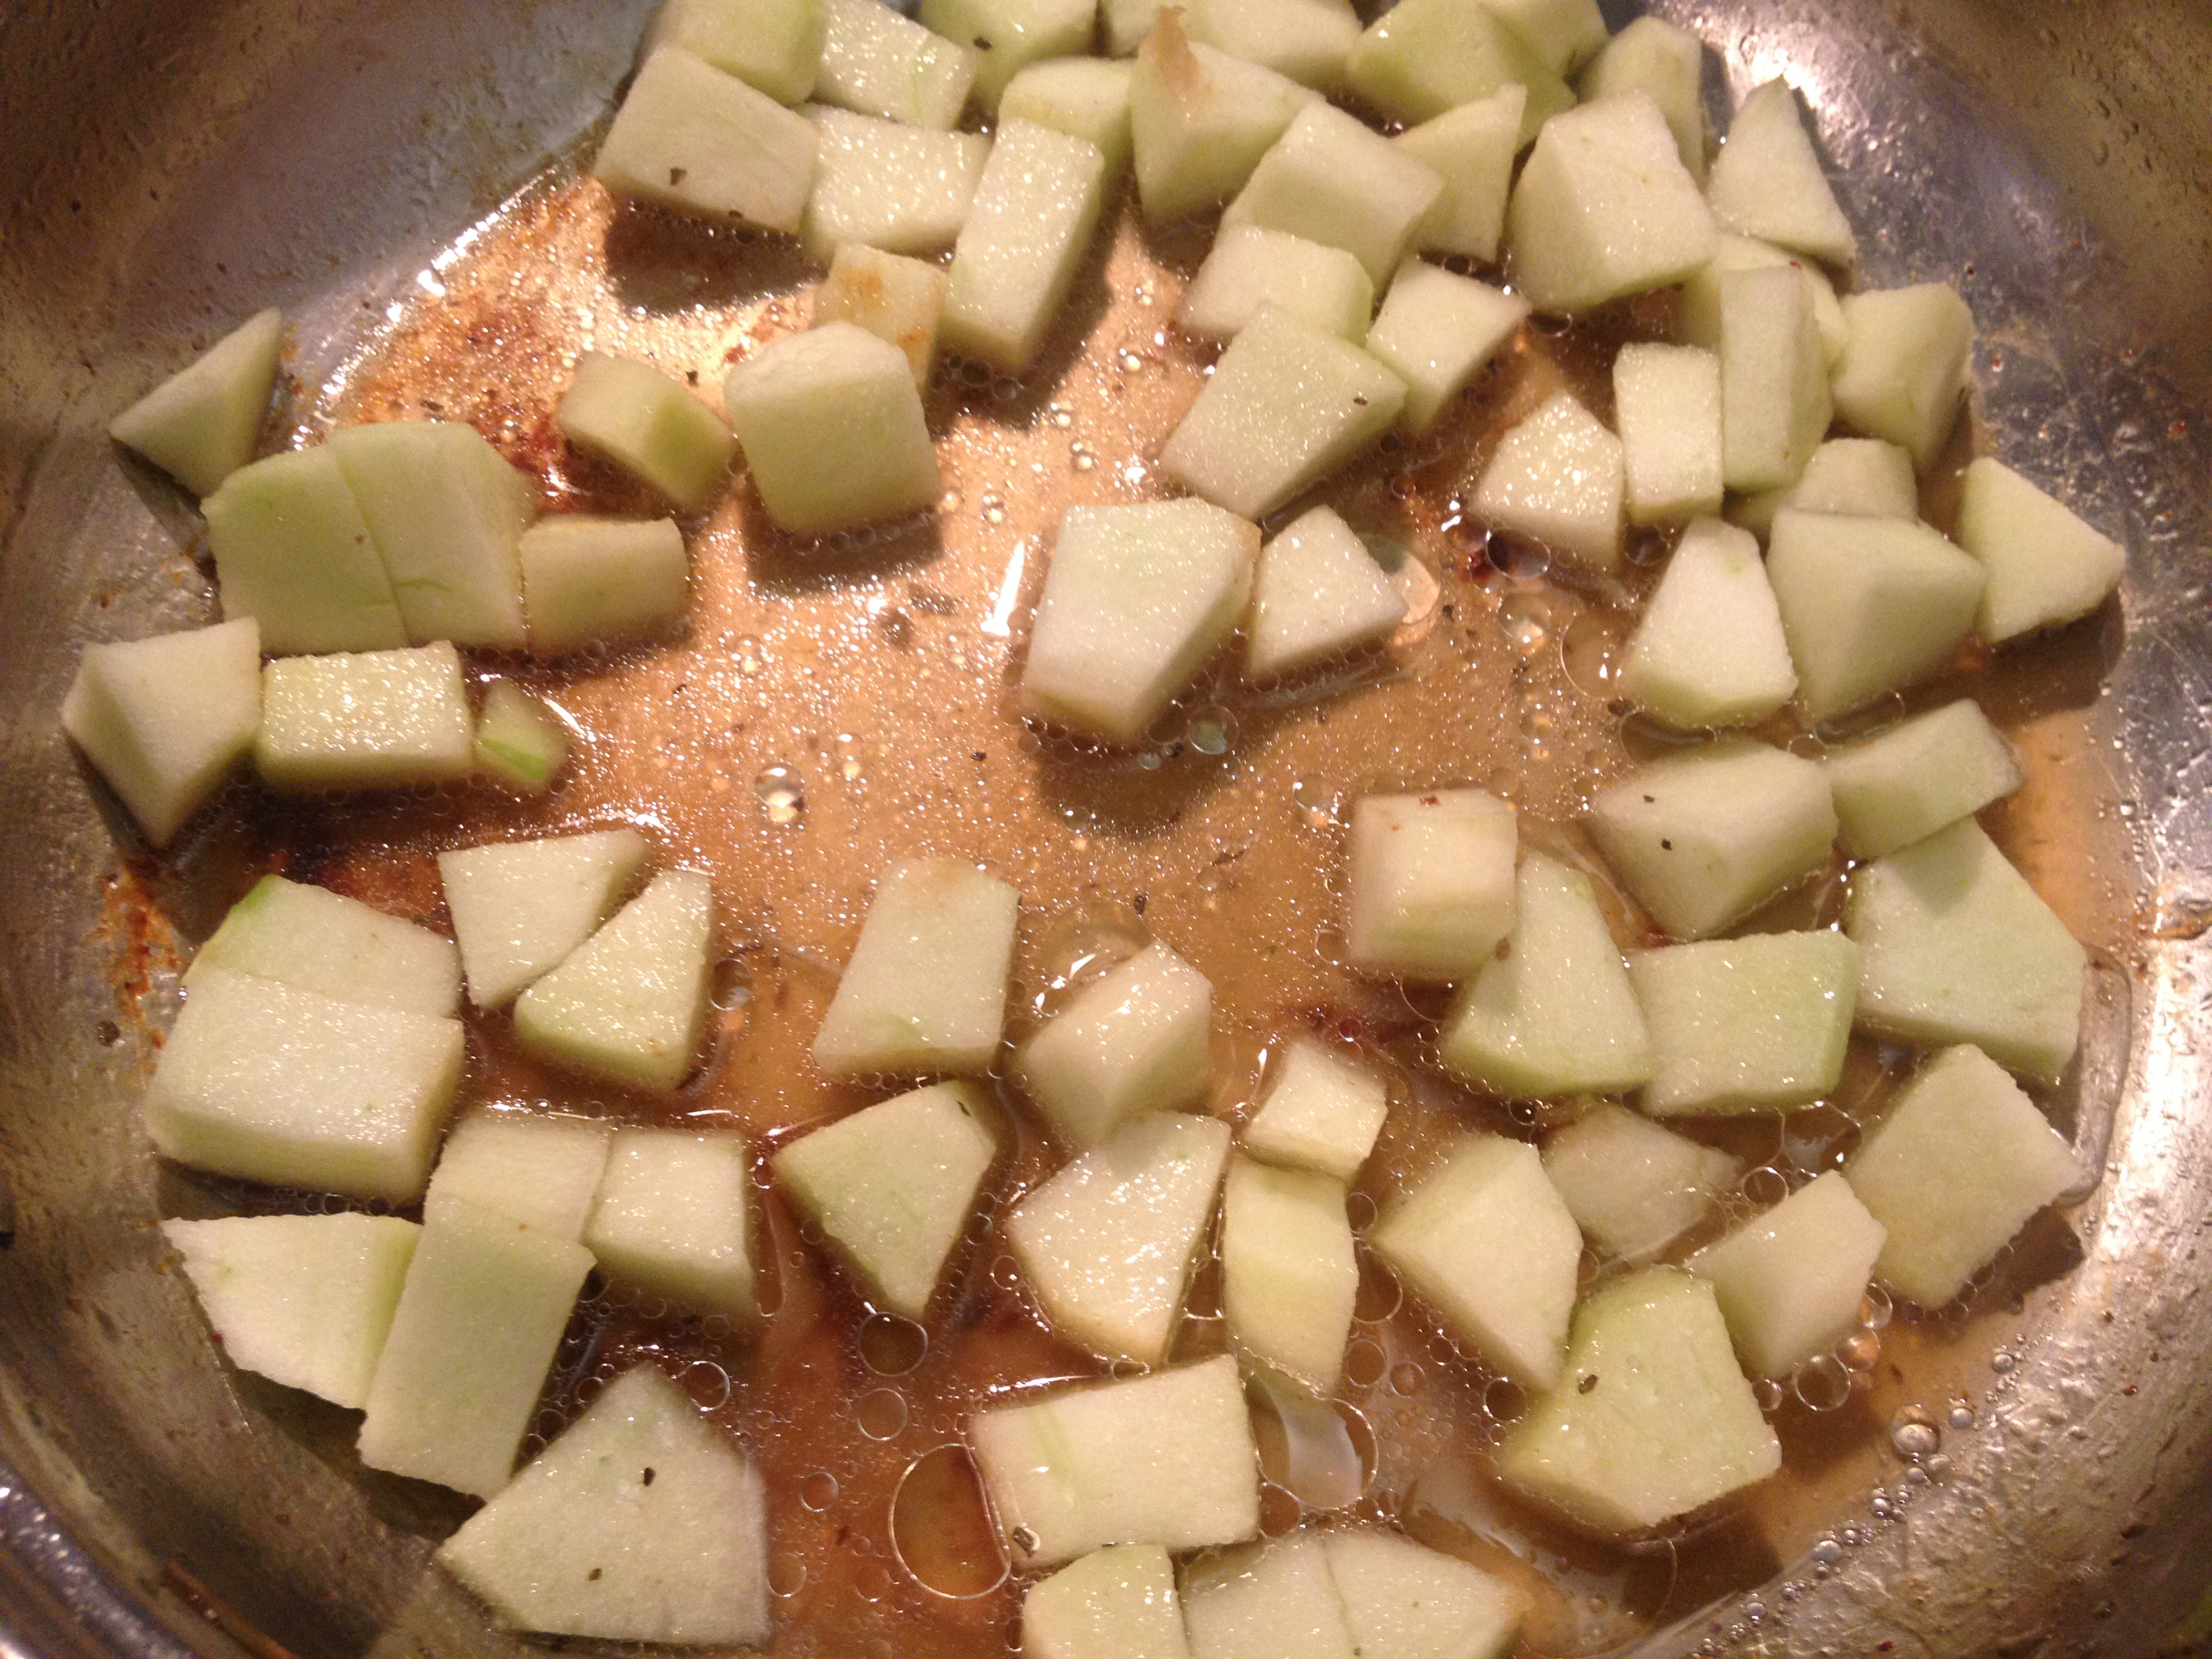 Sauteeing apples and molasses.